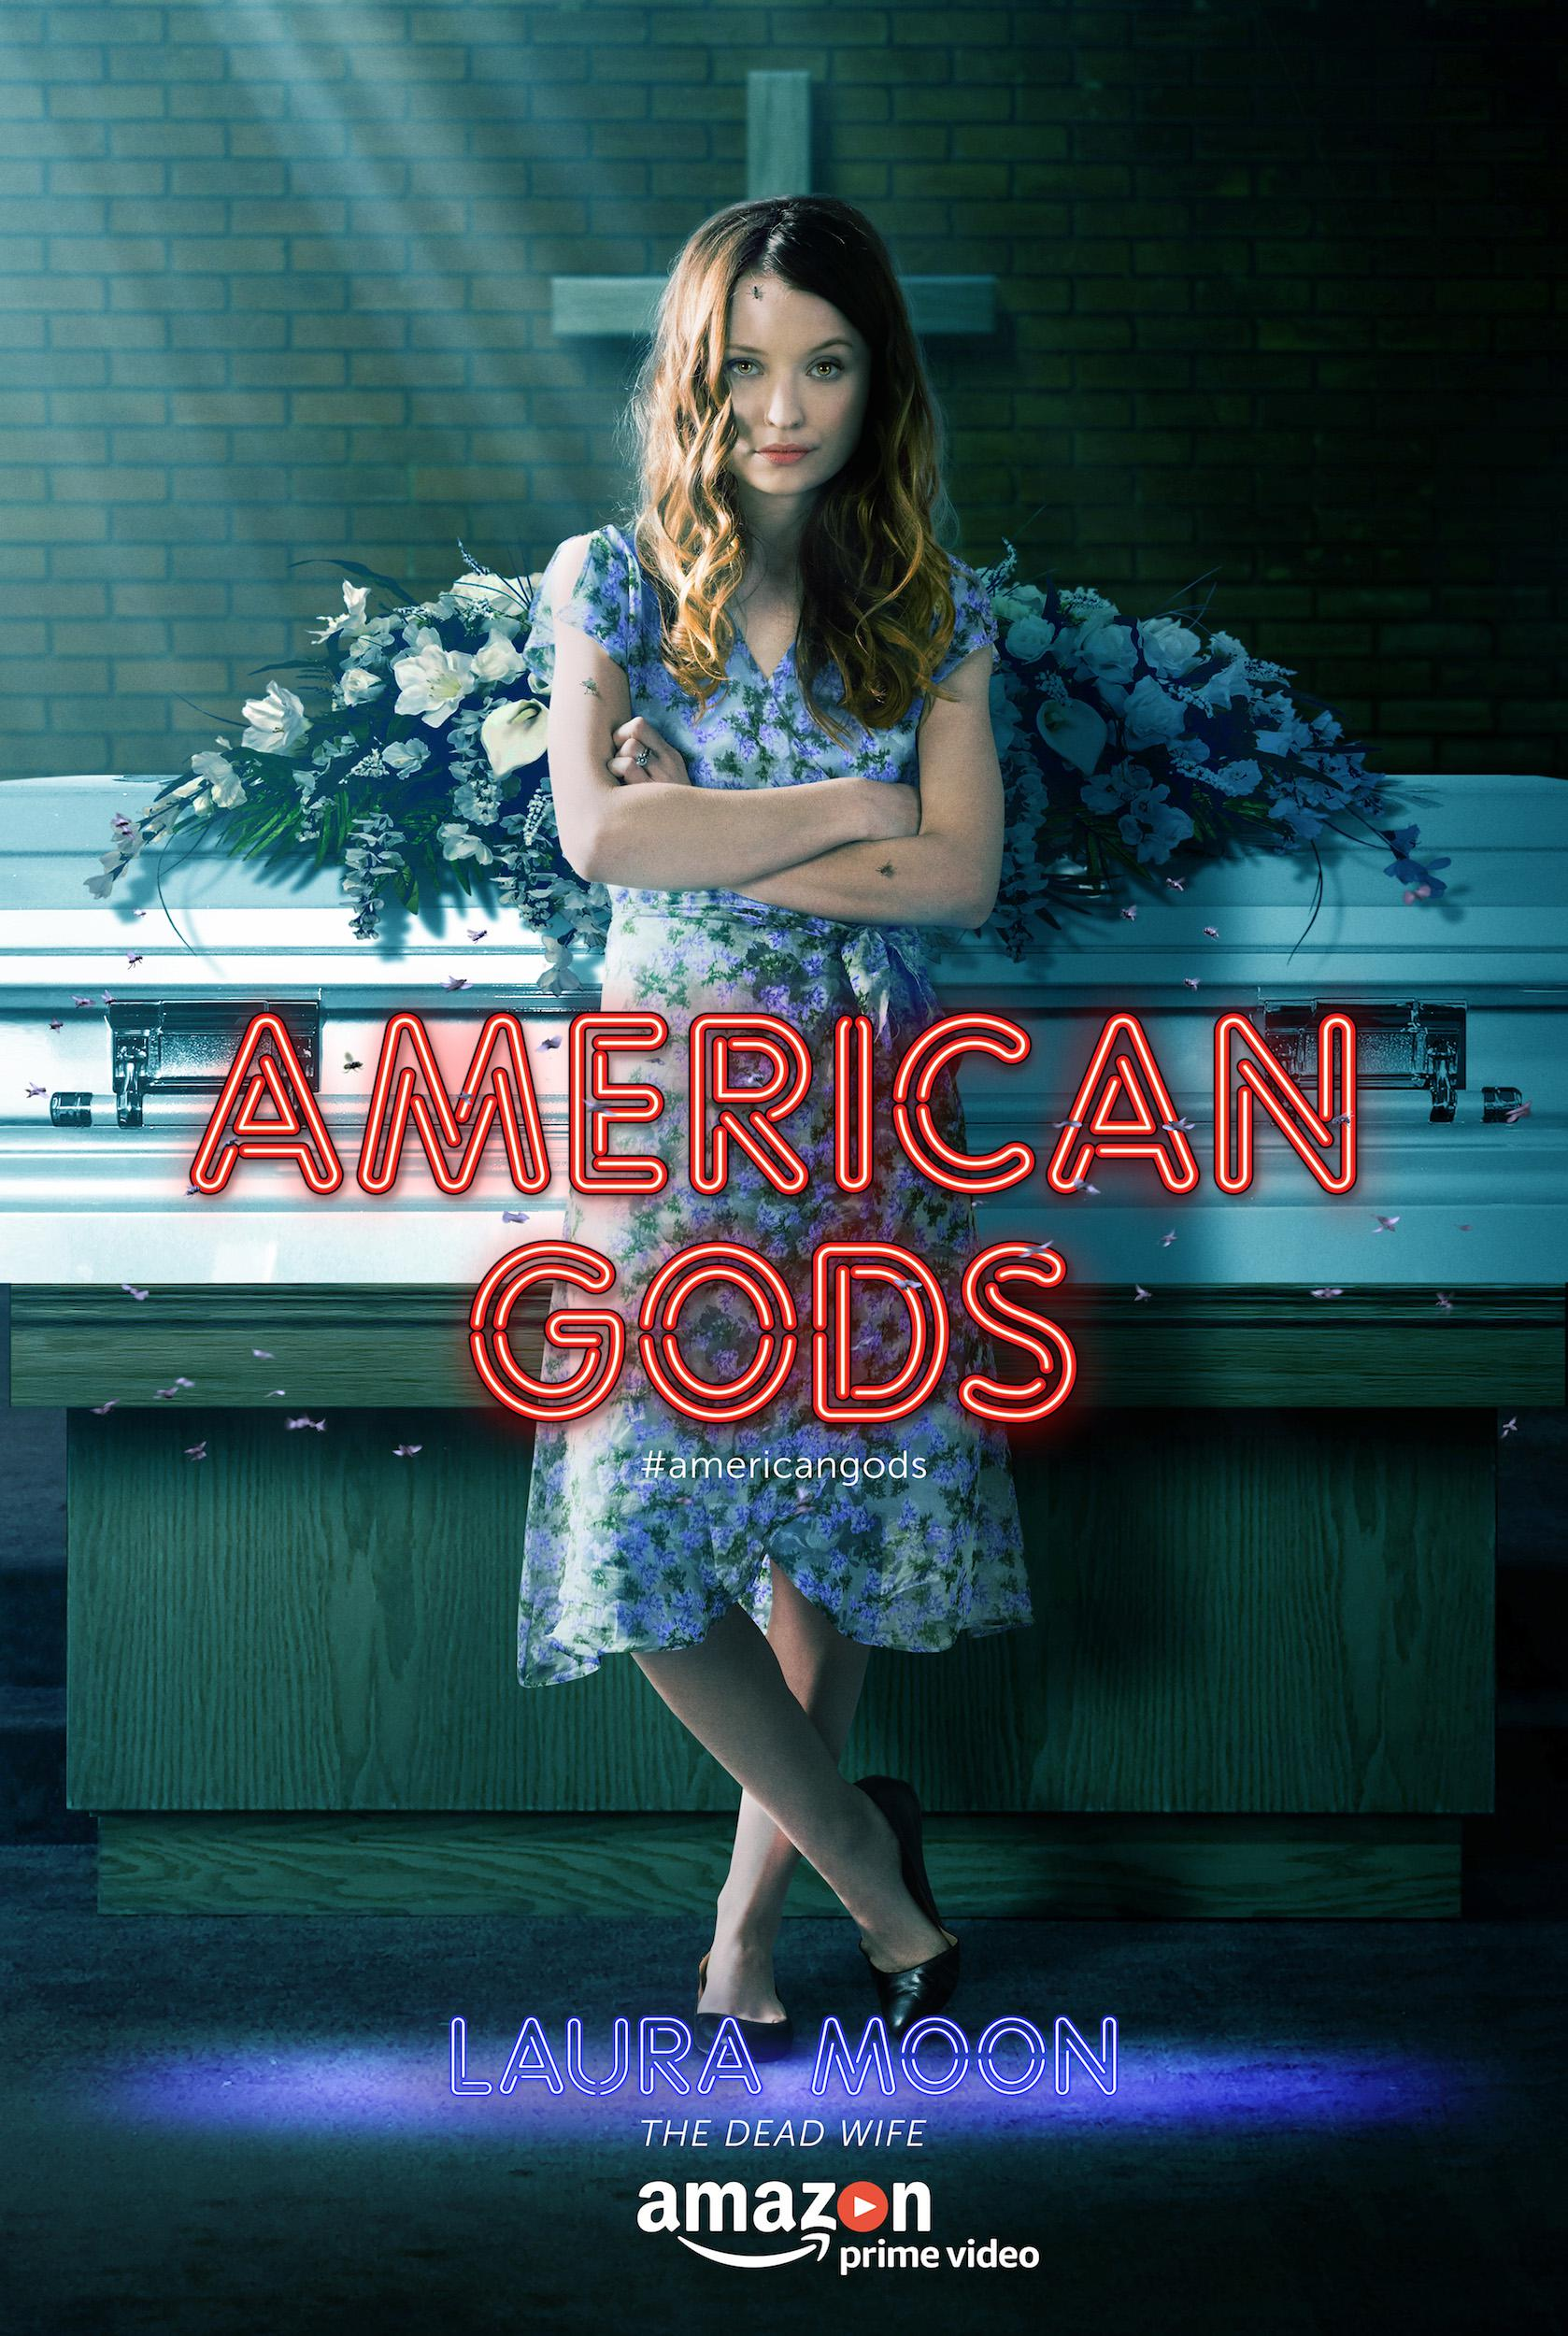 American Gods - Series -  Emily Browning as Laura Moon dead wife